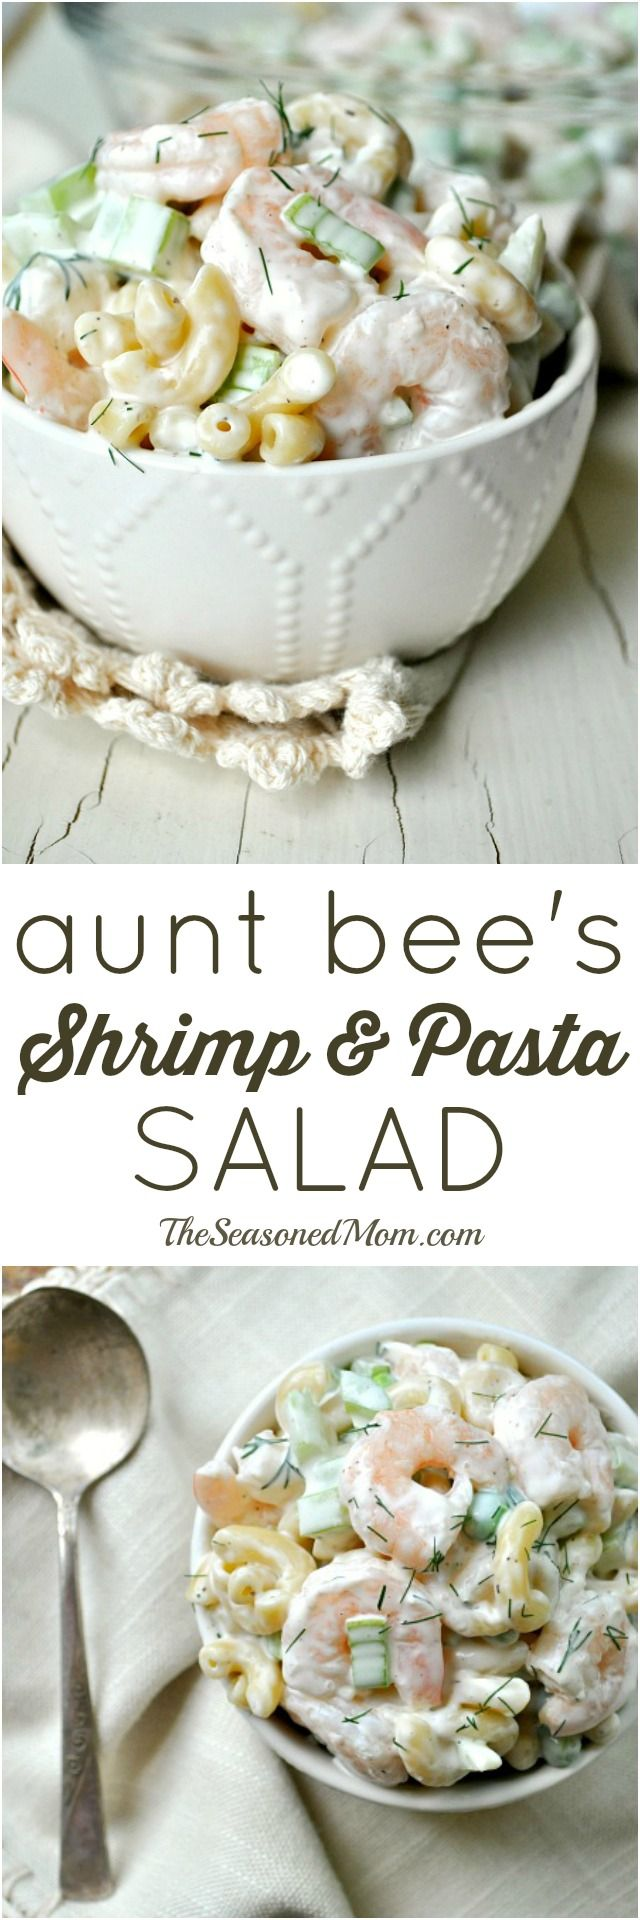 Full of simple and fresh ingredients, Aunt Bee's Shrimp and Pasta Salad has been a family-favorite for decades! It's the perfect side dish for your next cookout, an easy option for a weeknight dinner, or a refreshing make-ahead lunch option.